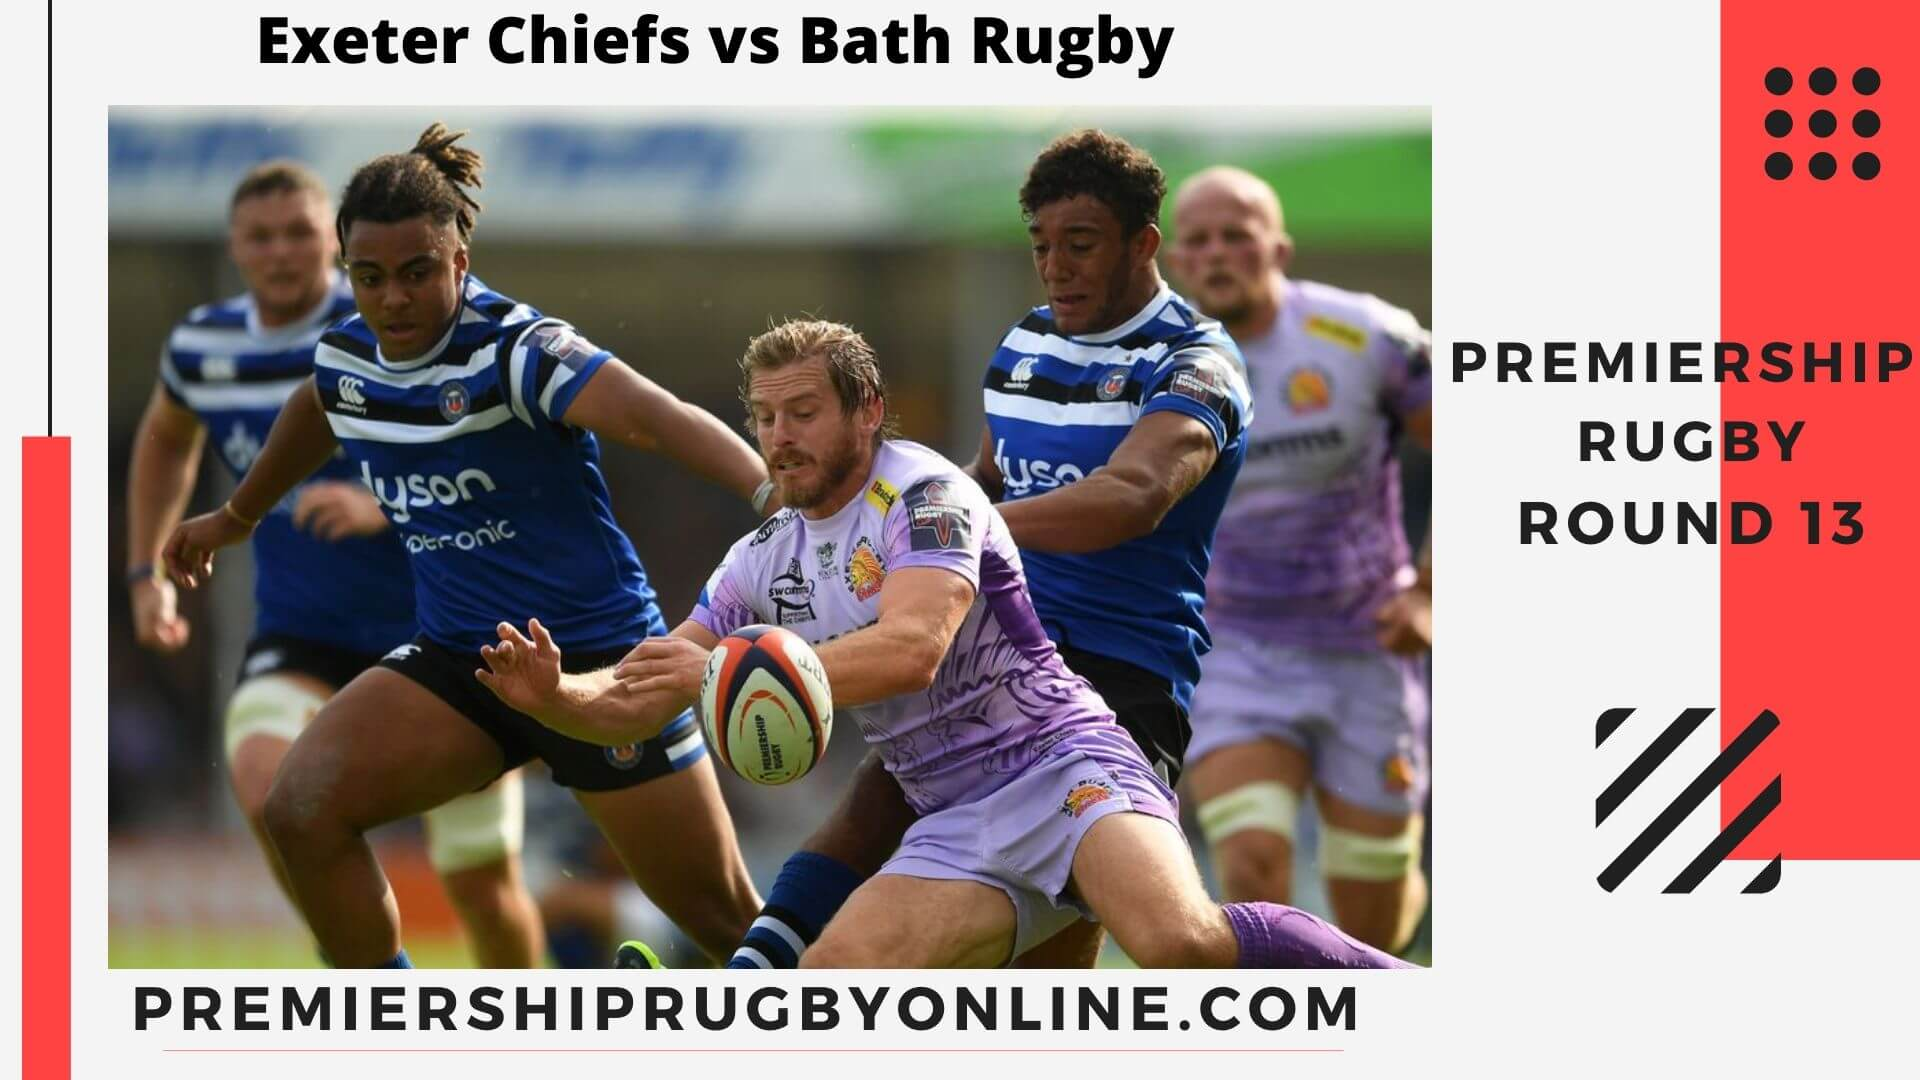 Exeter Chiefs vs Bath Rugby live stream | Round 13